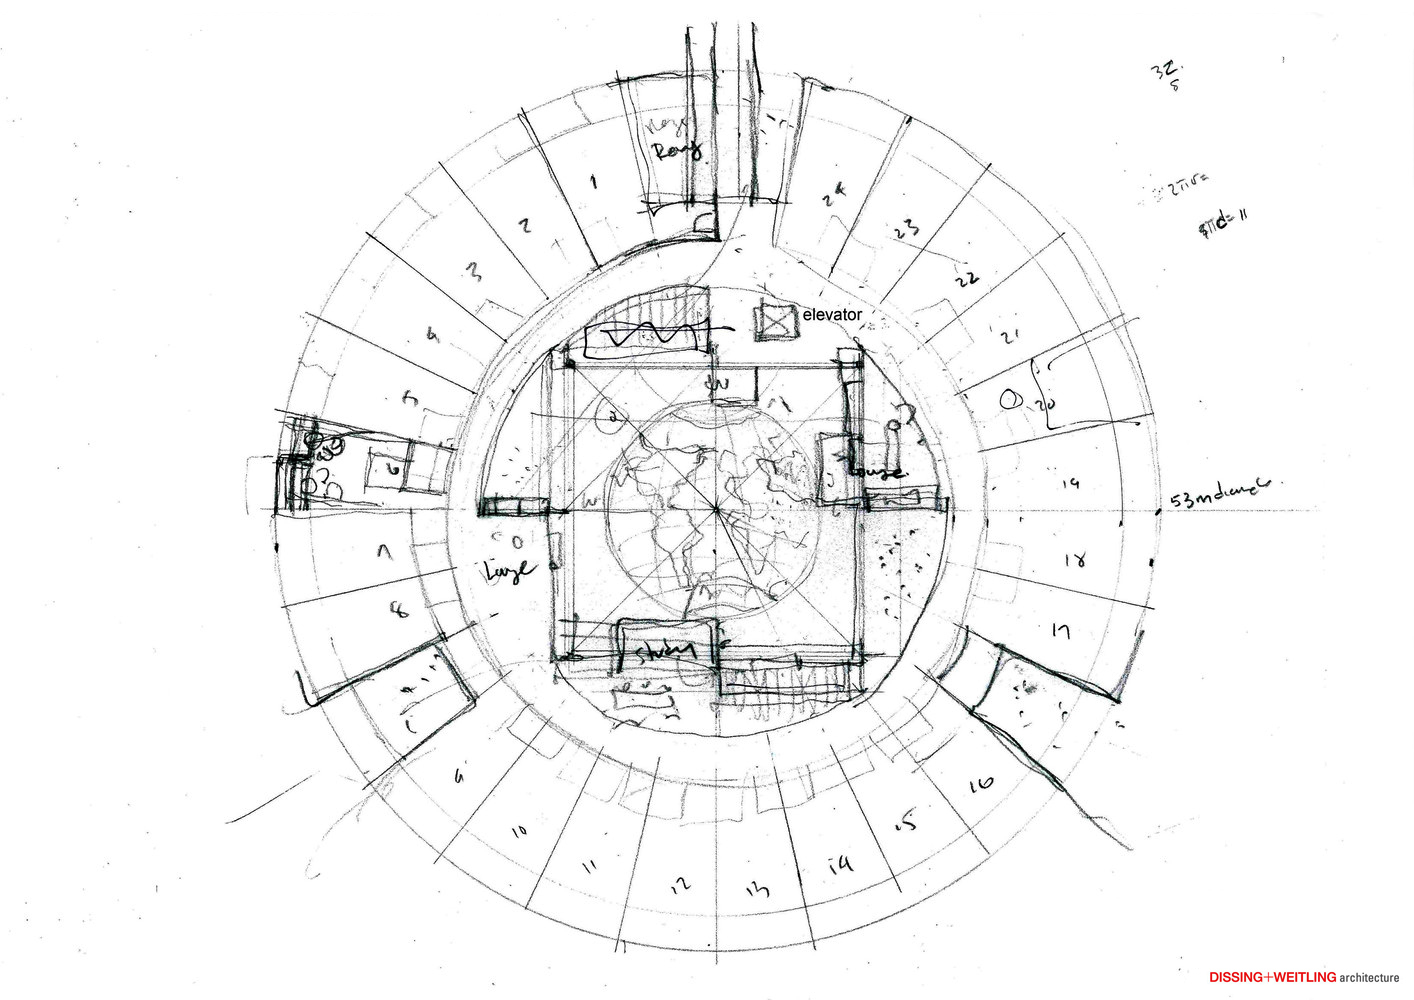 How to Properly Design Circular Plans